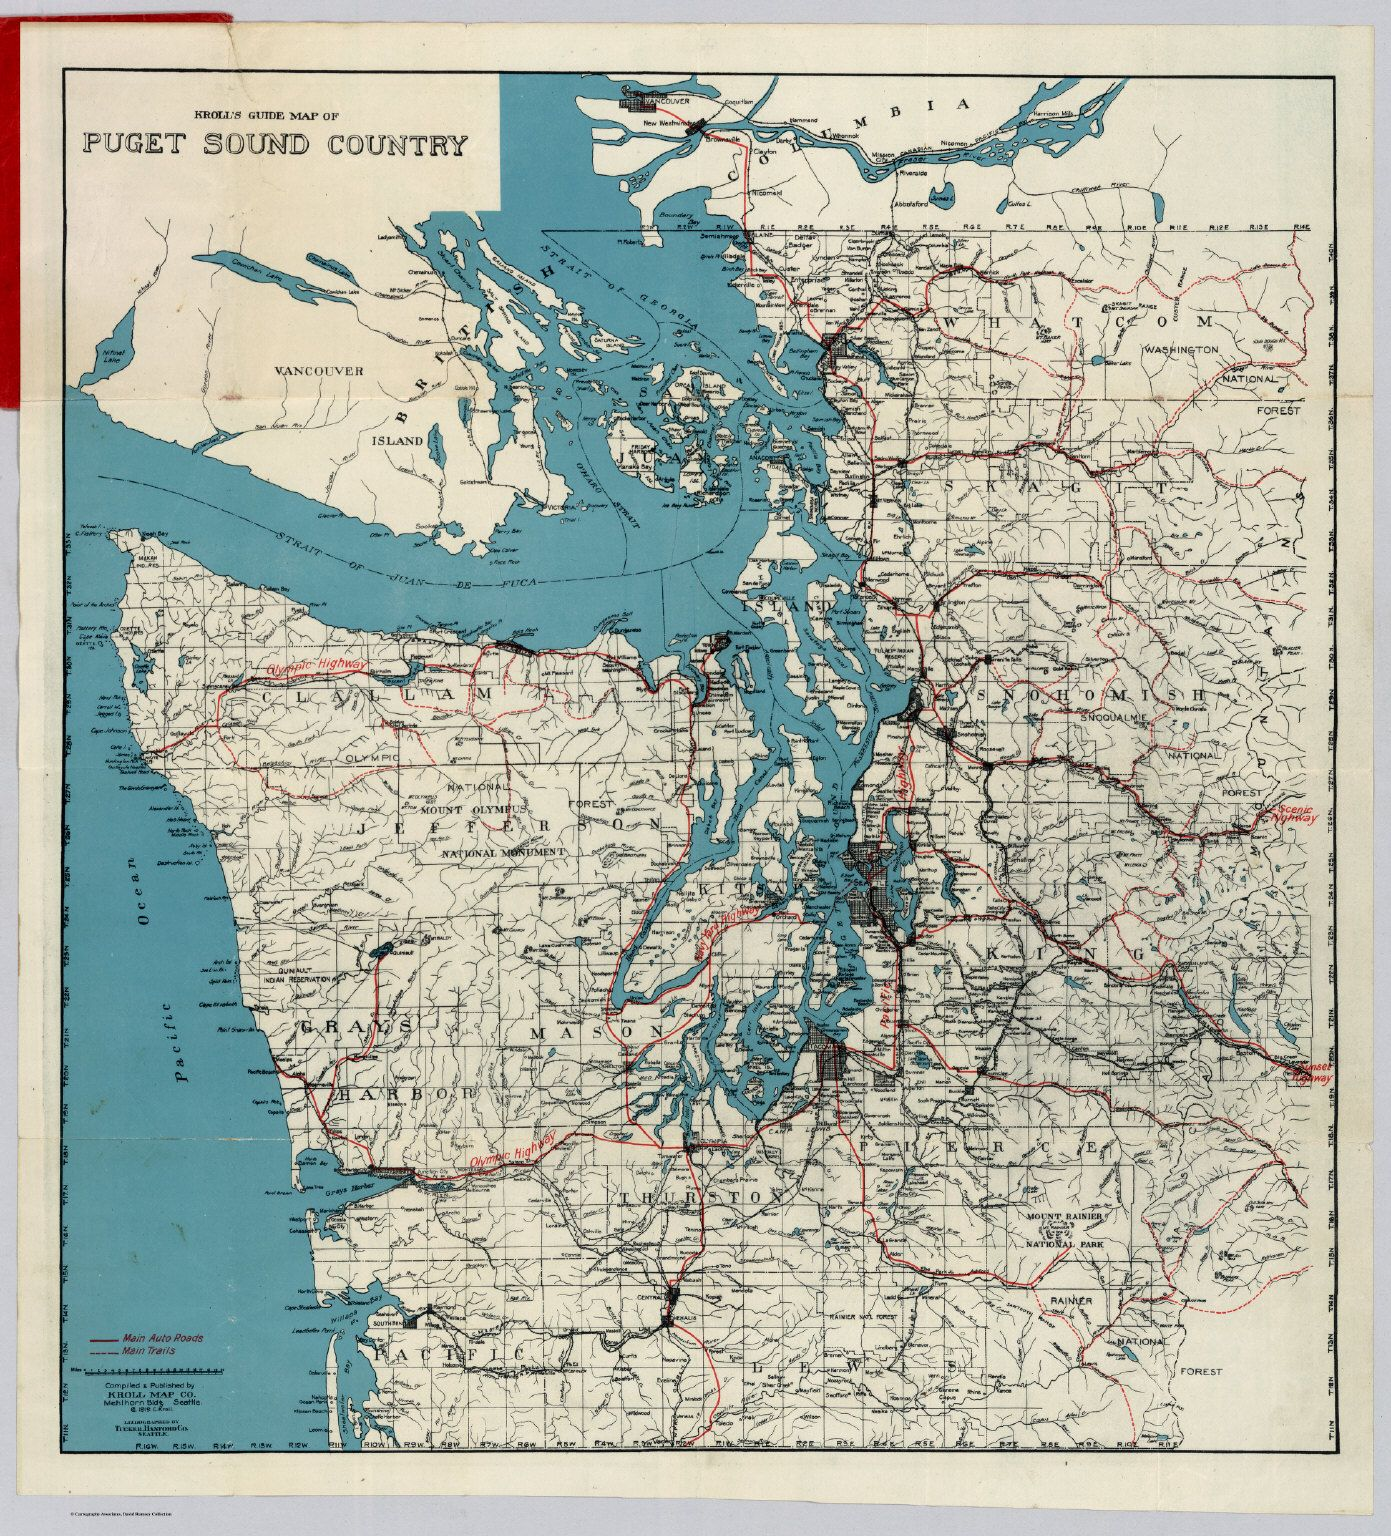 Krolls guide map of puget sound country compiled published by krolls guide map of puget sound country compiled published by kroll map co sciox Choice Image